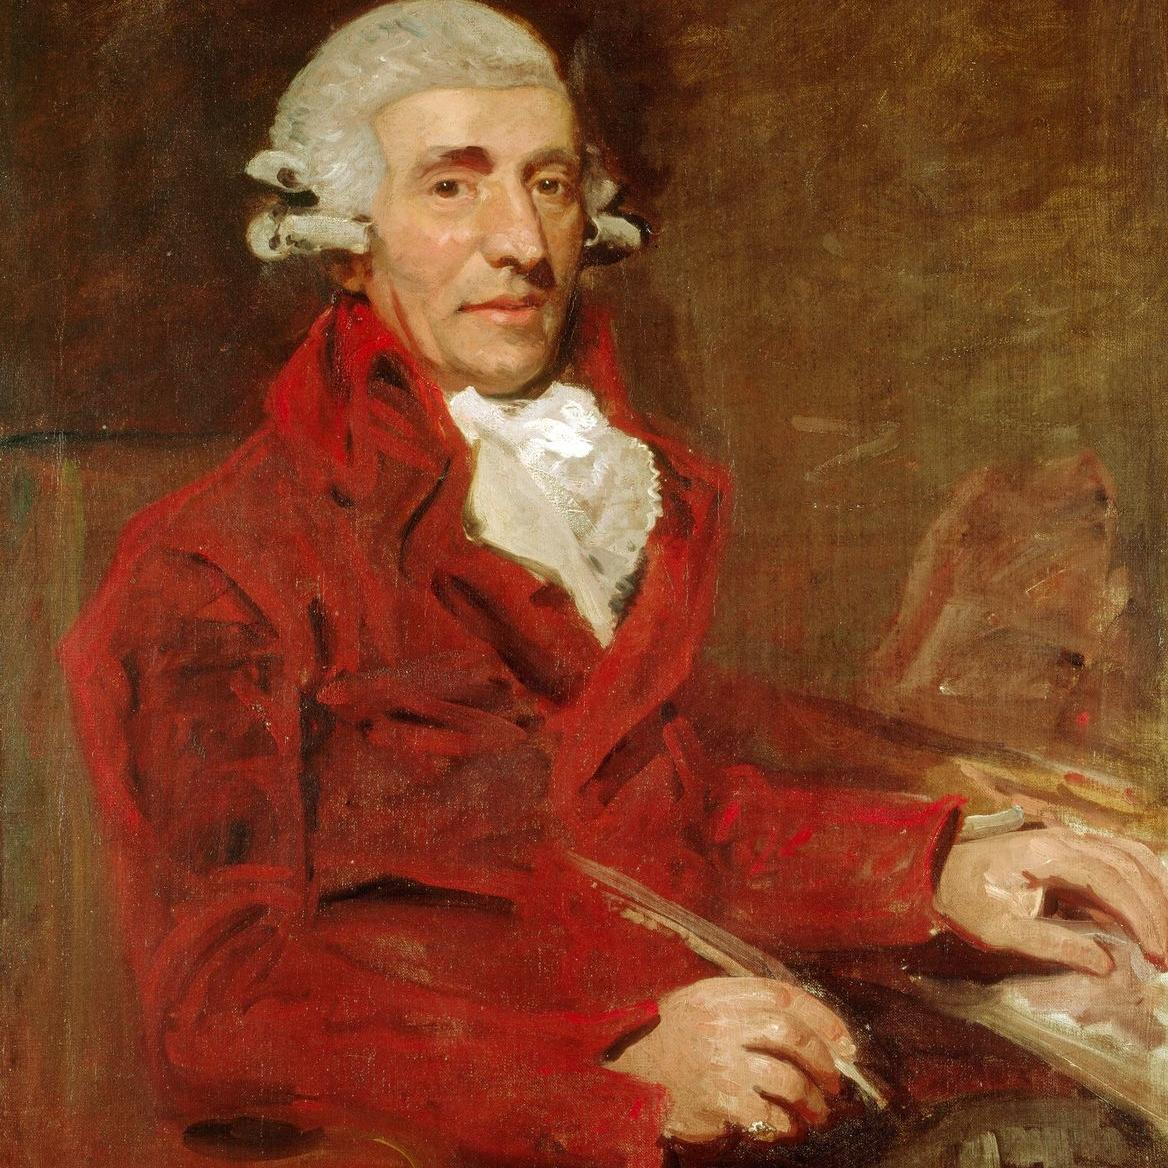 Haydn (c) Wikimedia Commons